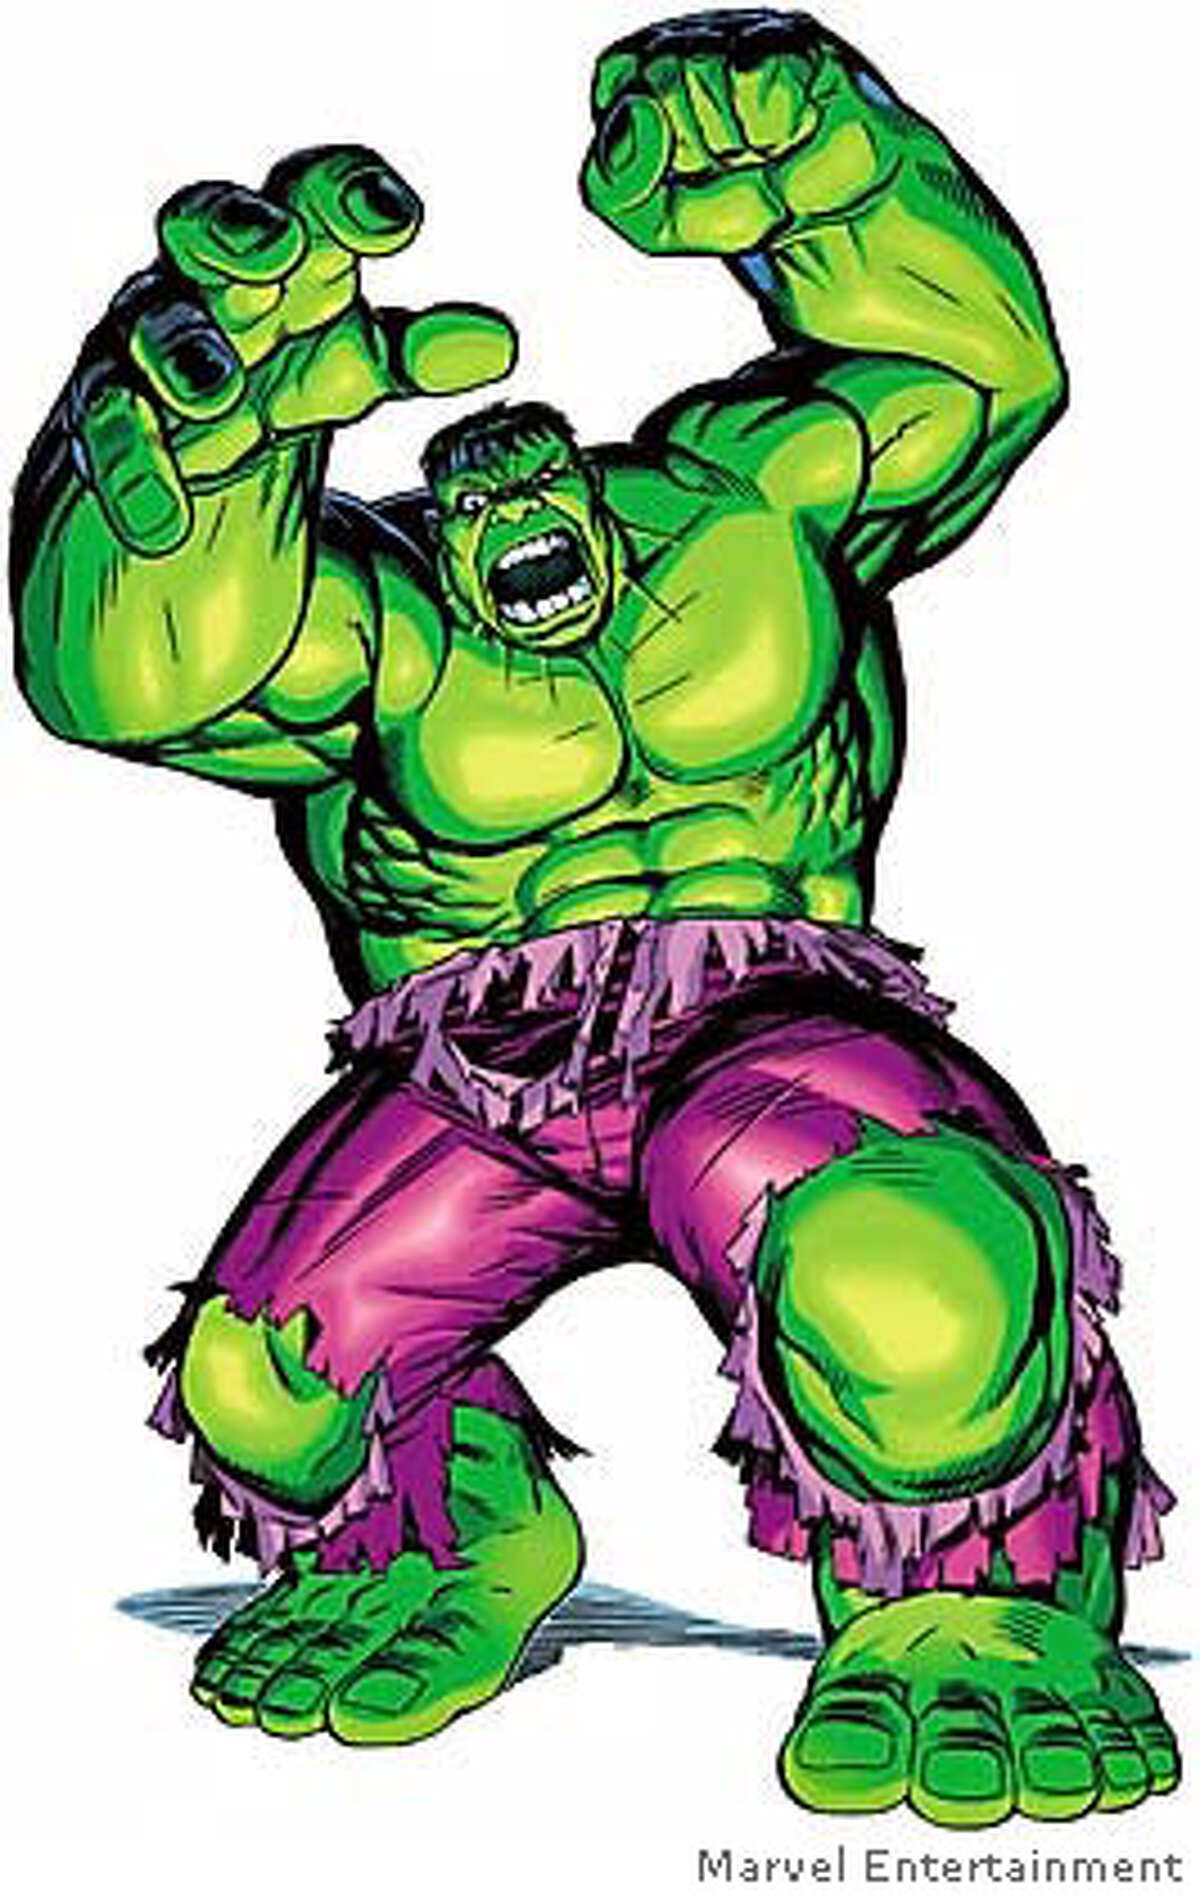 COSTUME18D-C-13FEB03-DD-HO Marvel Comics HULK STAND HANDOUT PHOTO/VERIFY RIGHTS AND USEAGE